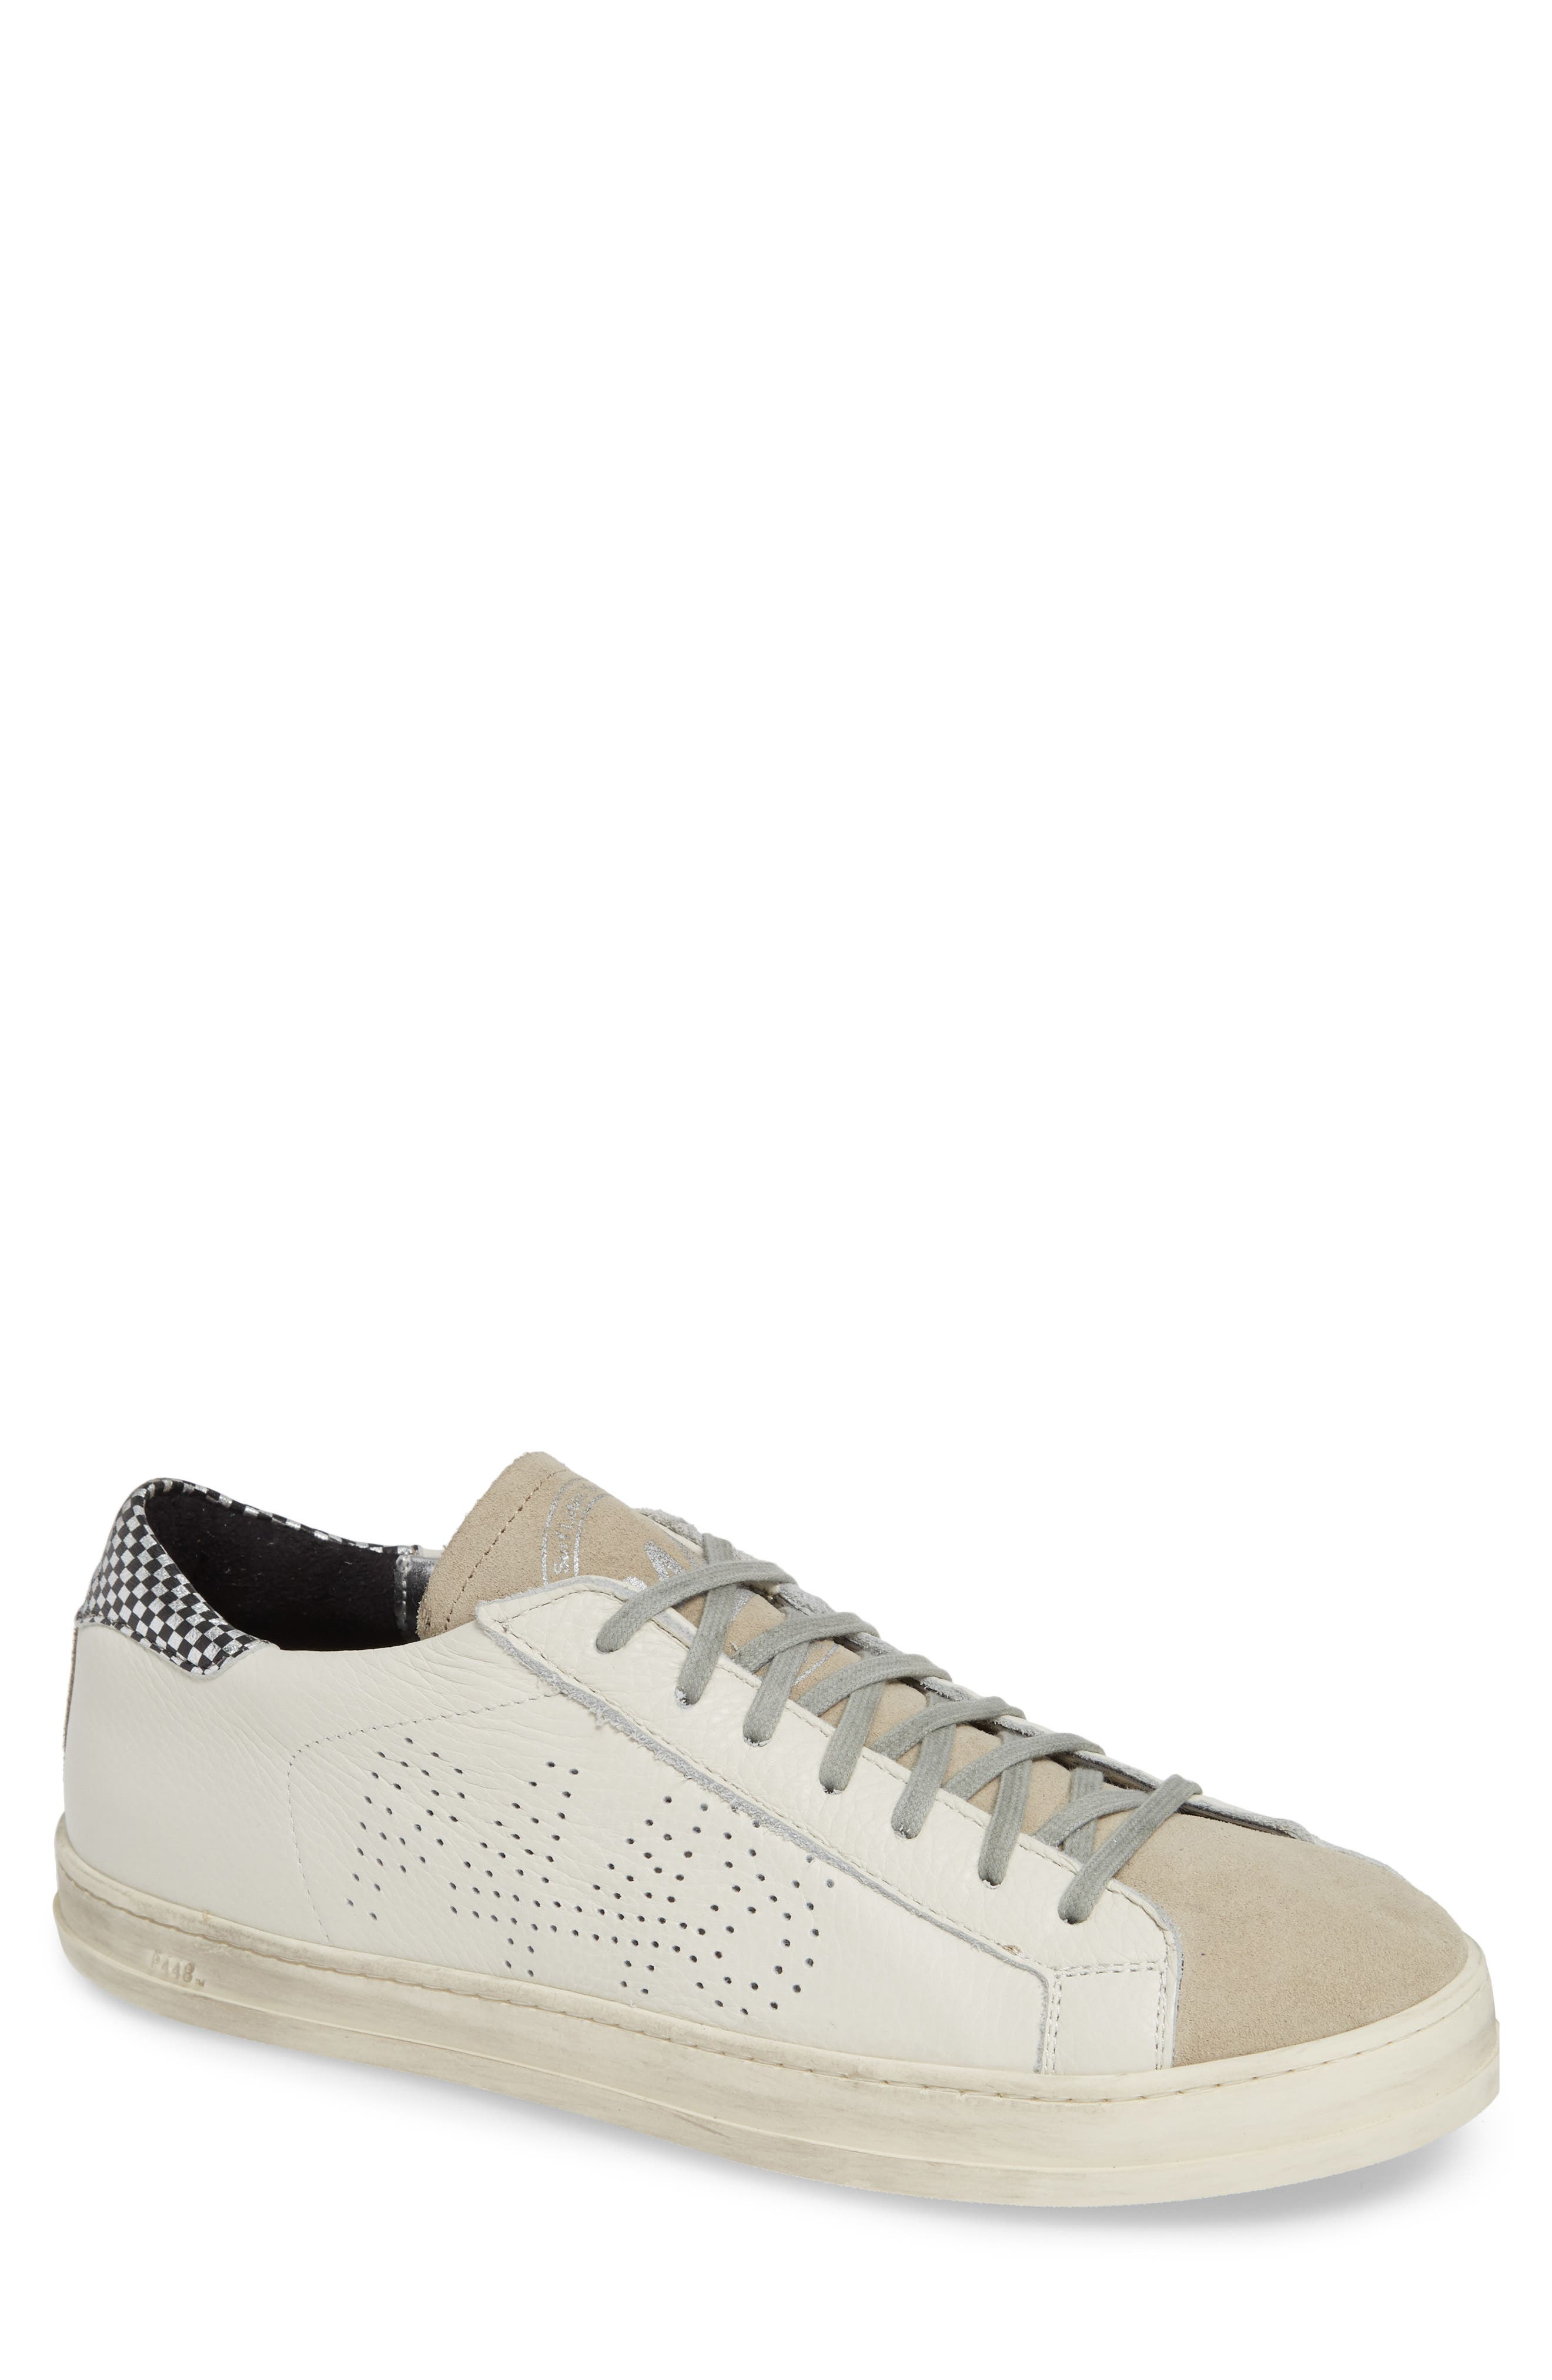 A8John Perforated Sneaker,                         Main,                         color, WHITE/ WHITE